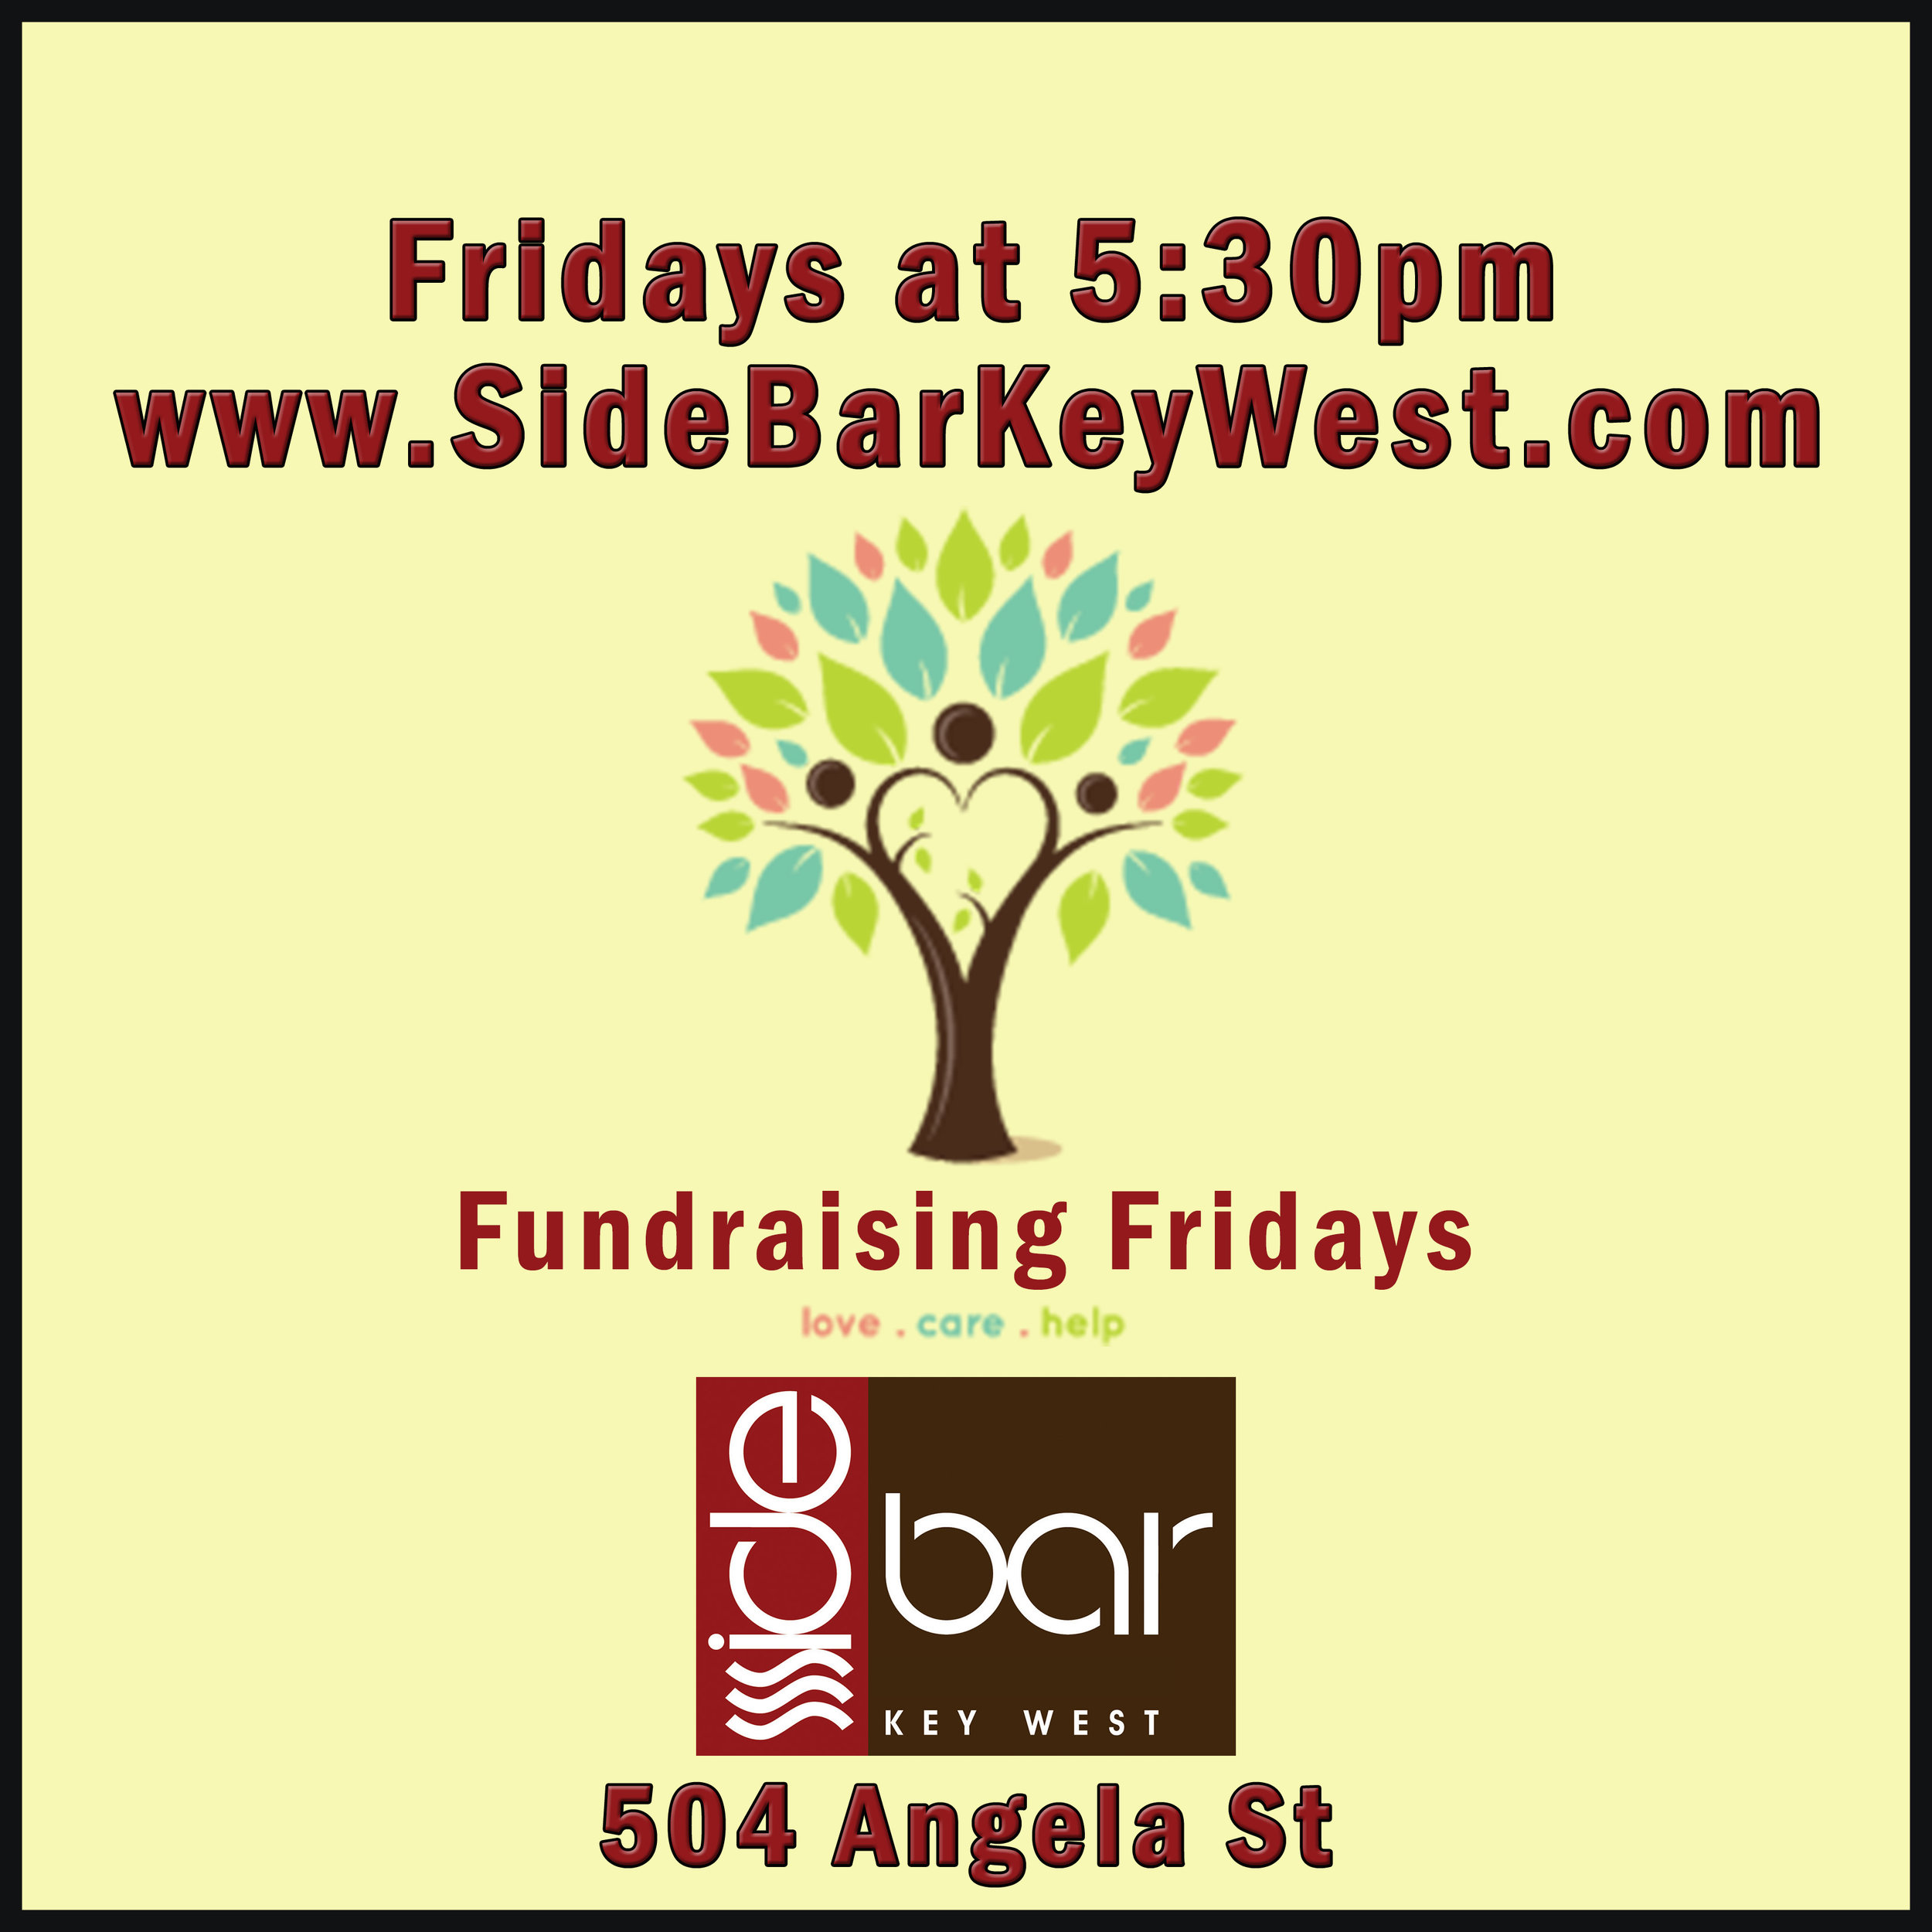 We Support your Charity on Friday - Raising Money At SideBarFree Air conditioned SpaceHappy Hour PricesTips donated to your charityFree Parking for locals (up to 4 hours) at the city's parking by the fire station across the street on Angela and Simonton